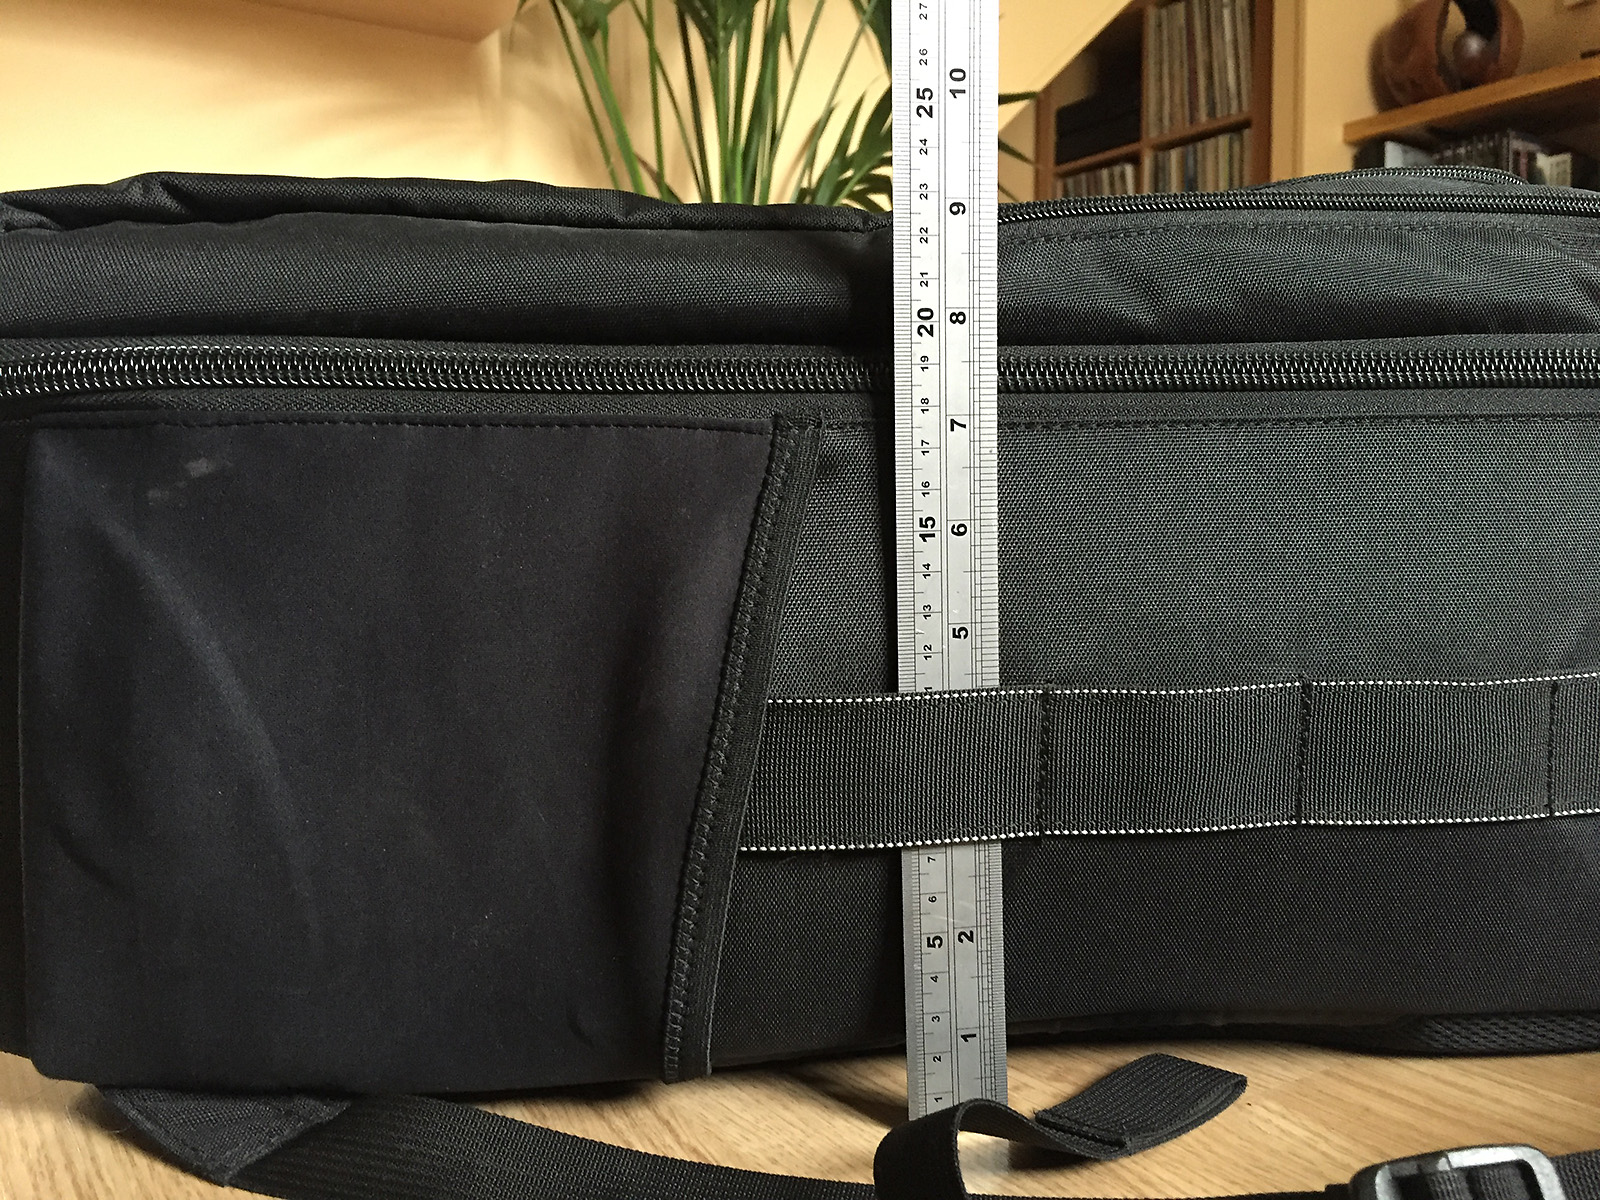 The Think Tank Airport Accelerator may have a depth of the FAA recommended 22.9cm but that is without the anything in the front pockets. Adding another 2-3cm for a laptop makes this bag much less cabin-friendly.